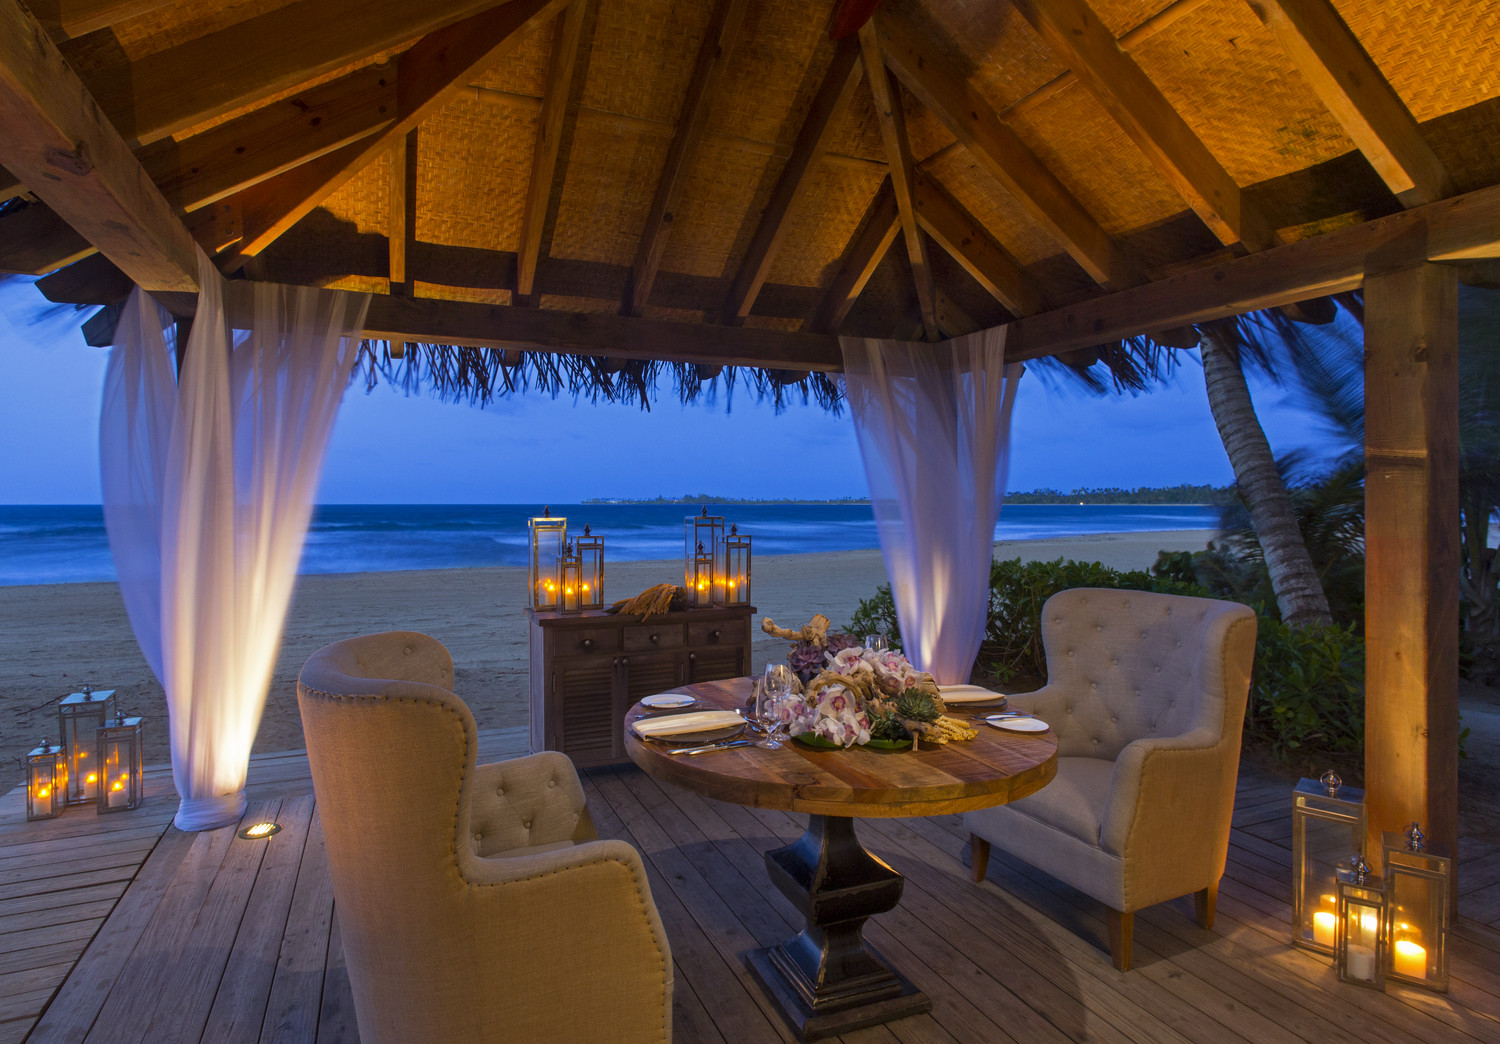 St. Regis Bahia Beach Resort romantic dinner